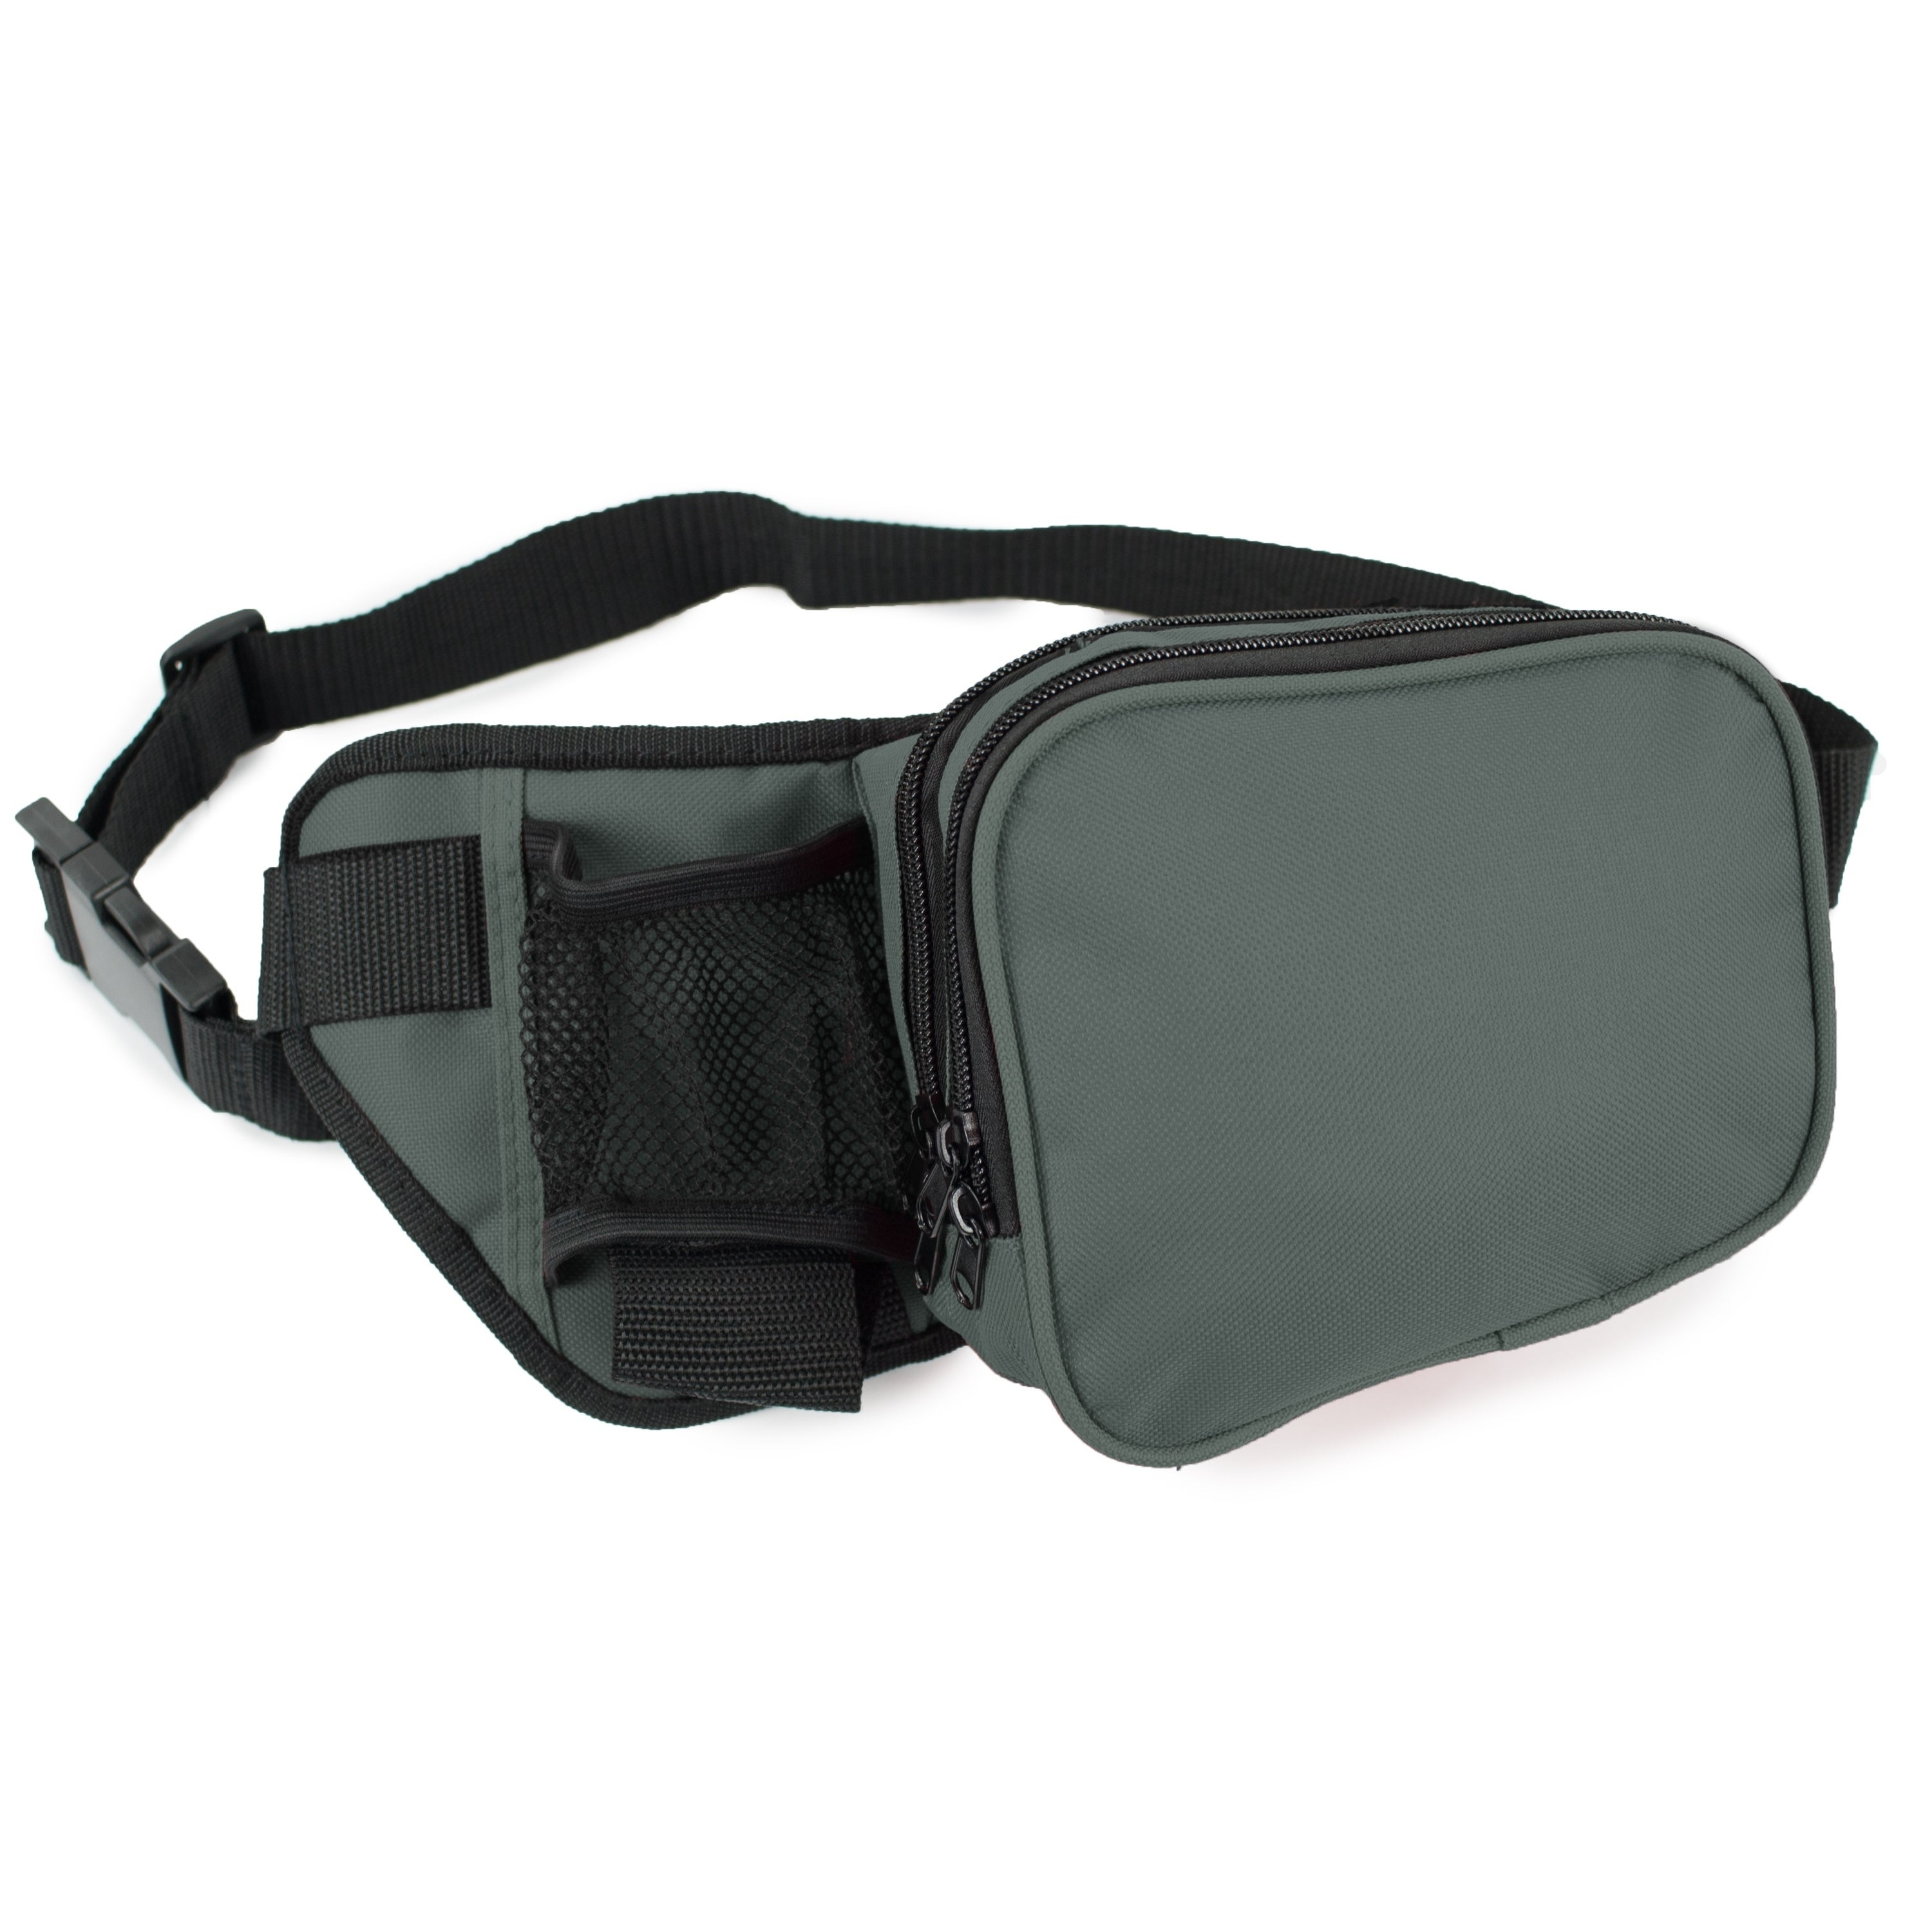 01380c77aa6f Shop Argo Sport 14 in. Waist Bag Pack with Mesh Pocket - Free ...